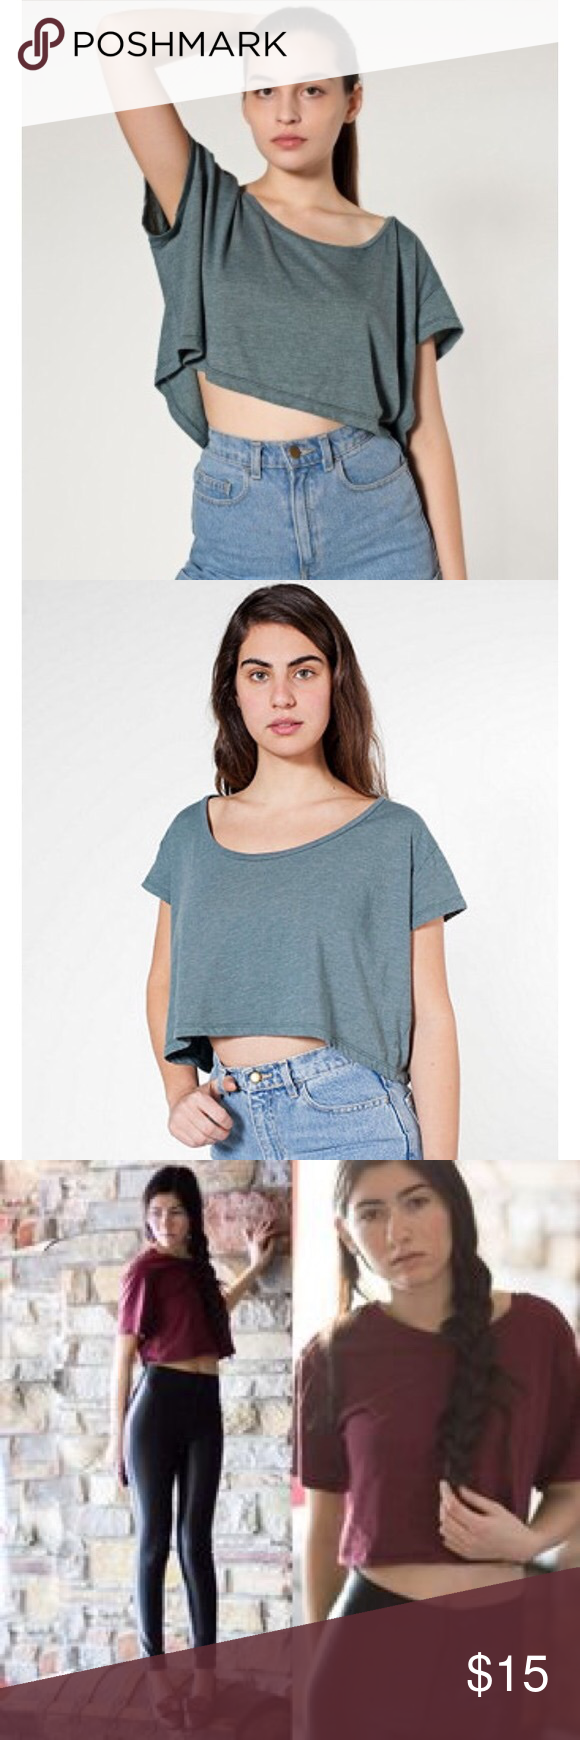 American apparel loose crop top This shirt is one size in color burgundy great for summer ☺️ American Apparel Tops Tees - Short Sleeve